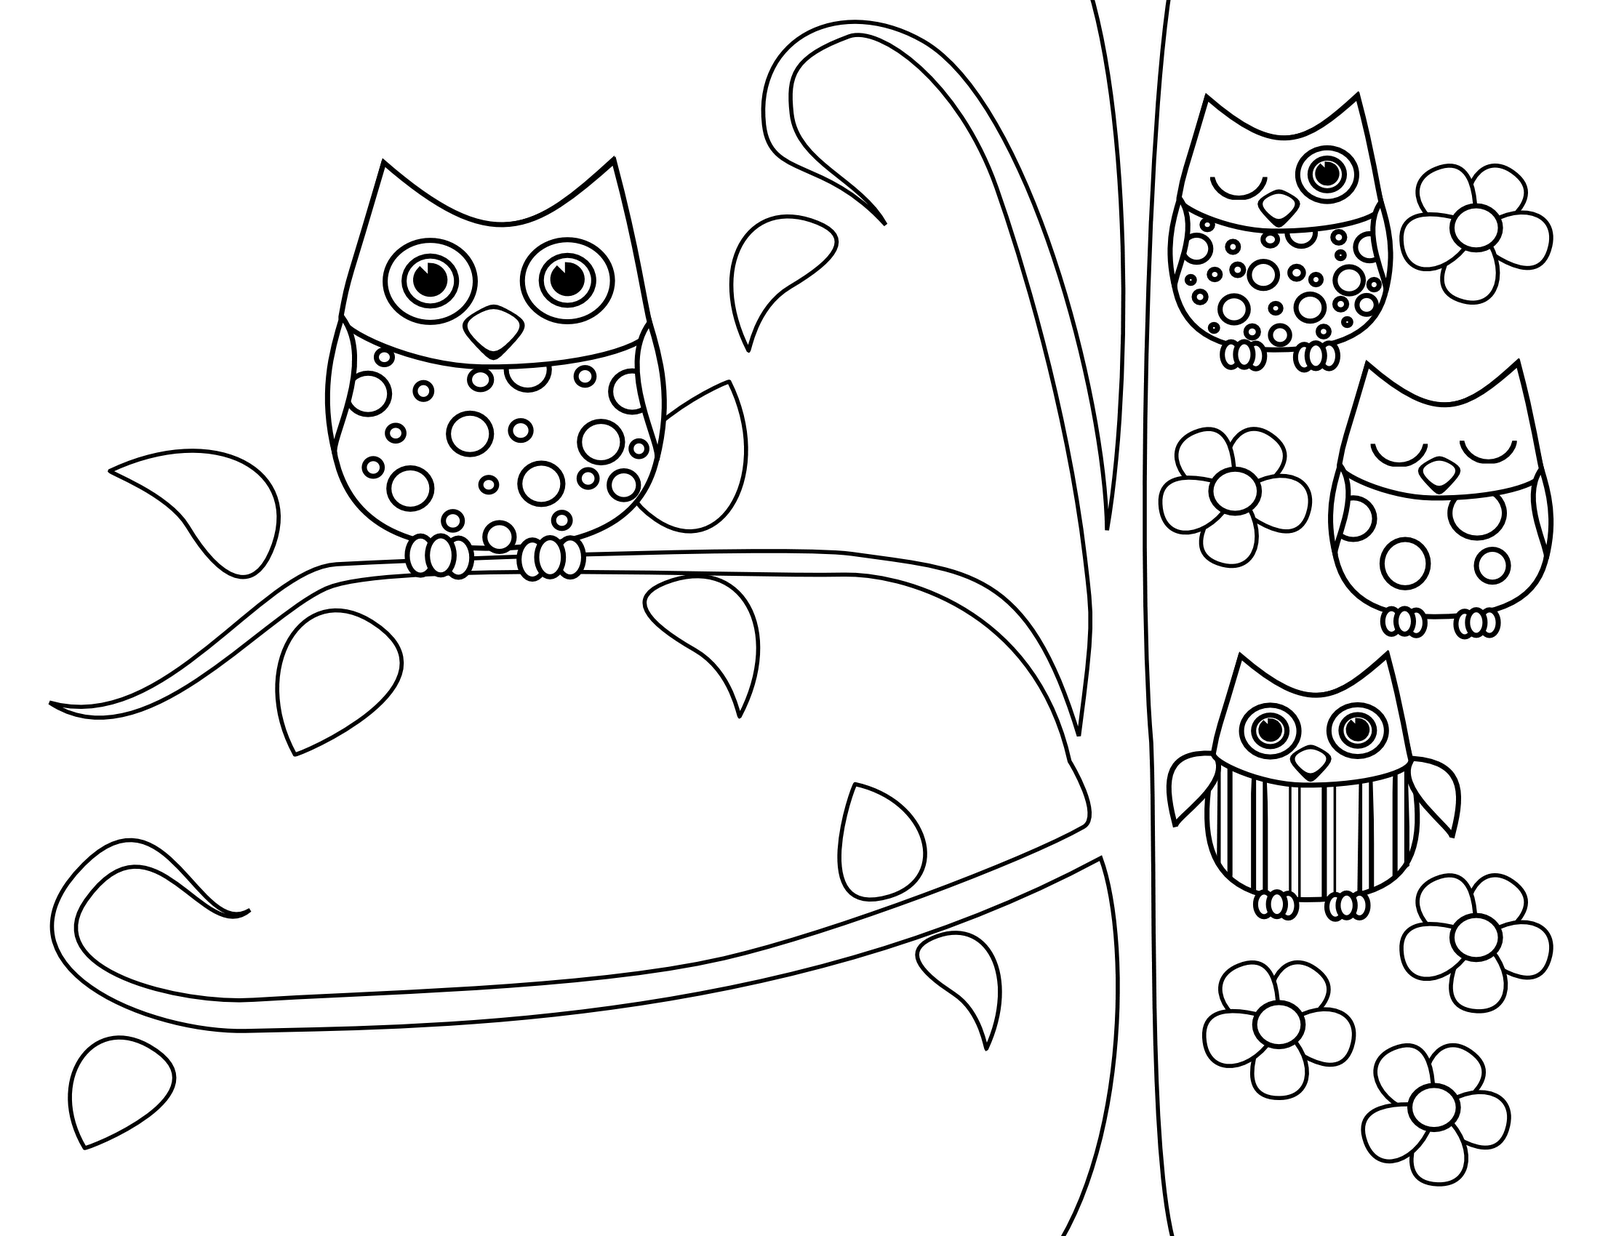 Owl coloring pages free - Owl Coloring Pages Free Printables Tricia Rennea Illustrator Mother S Day Is For